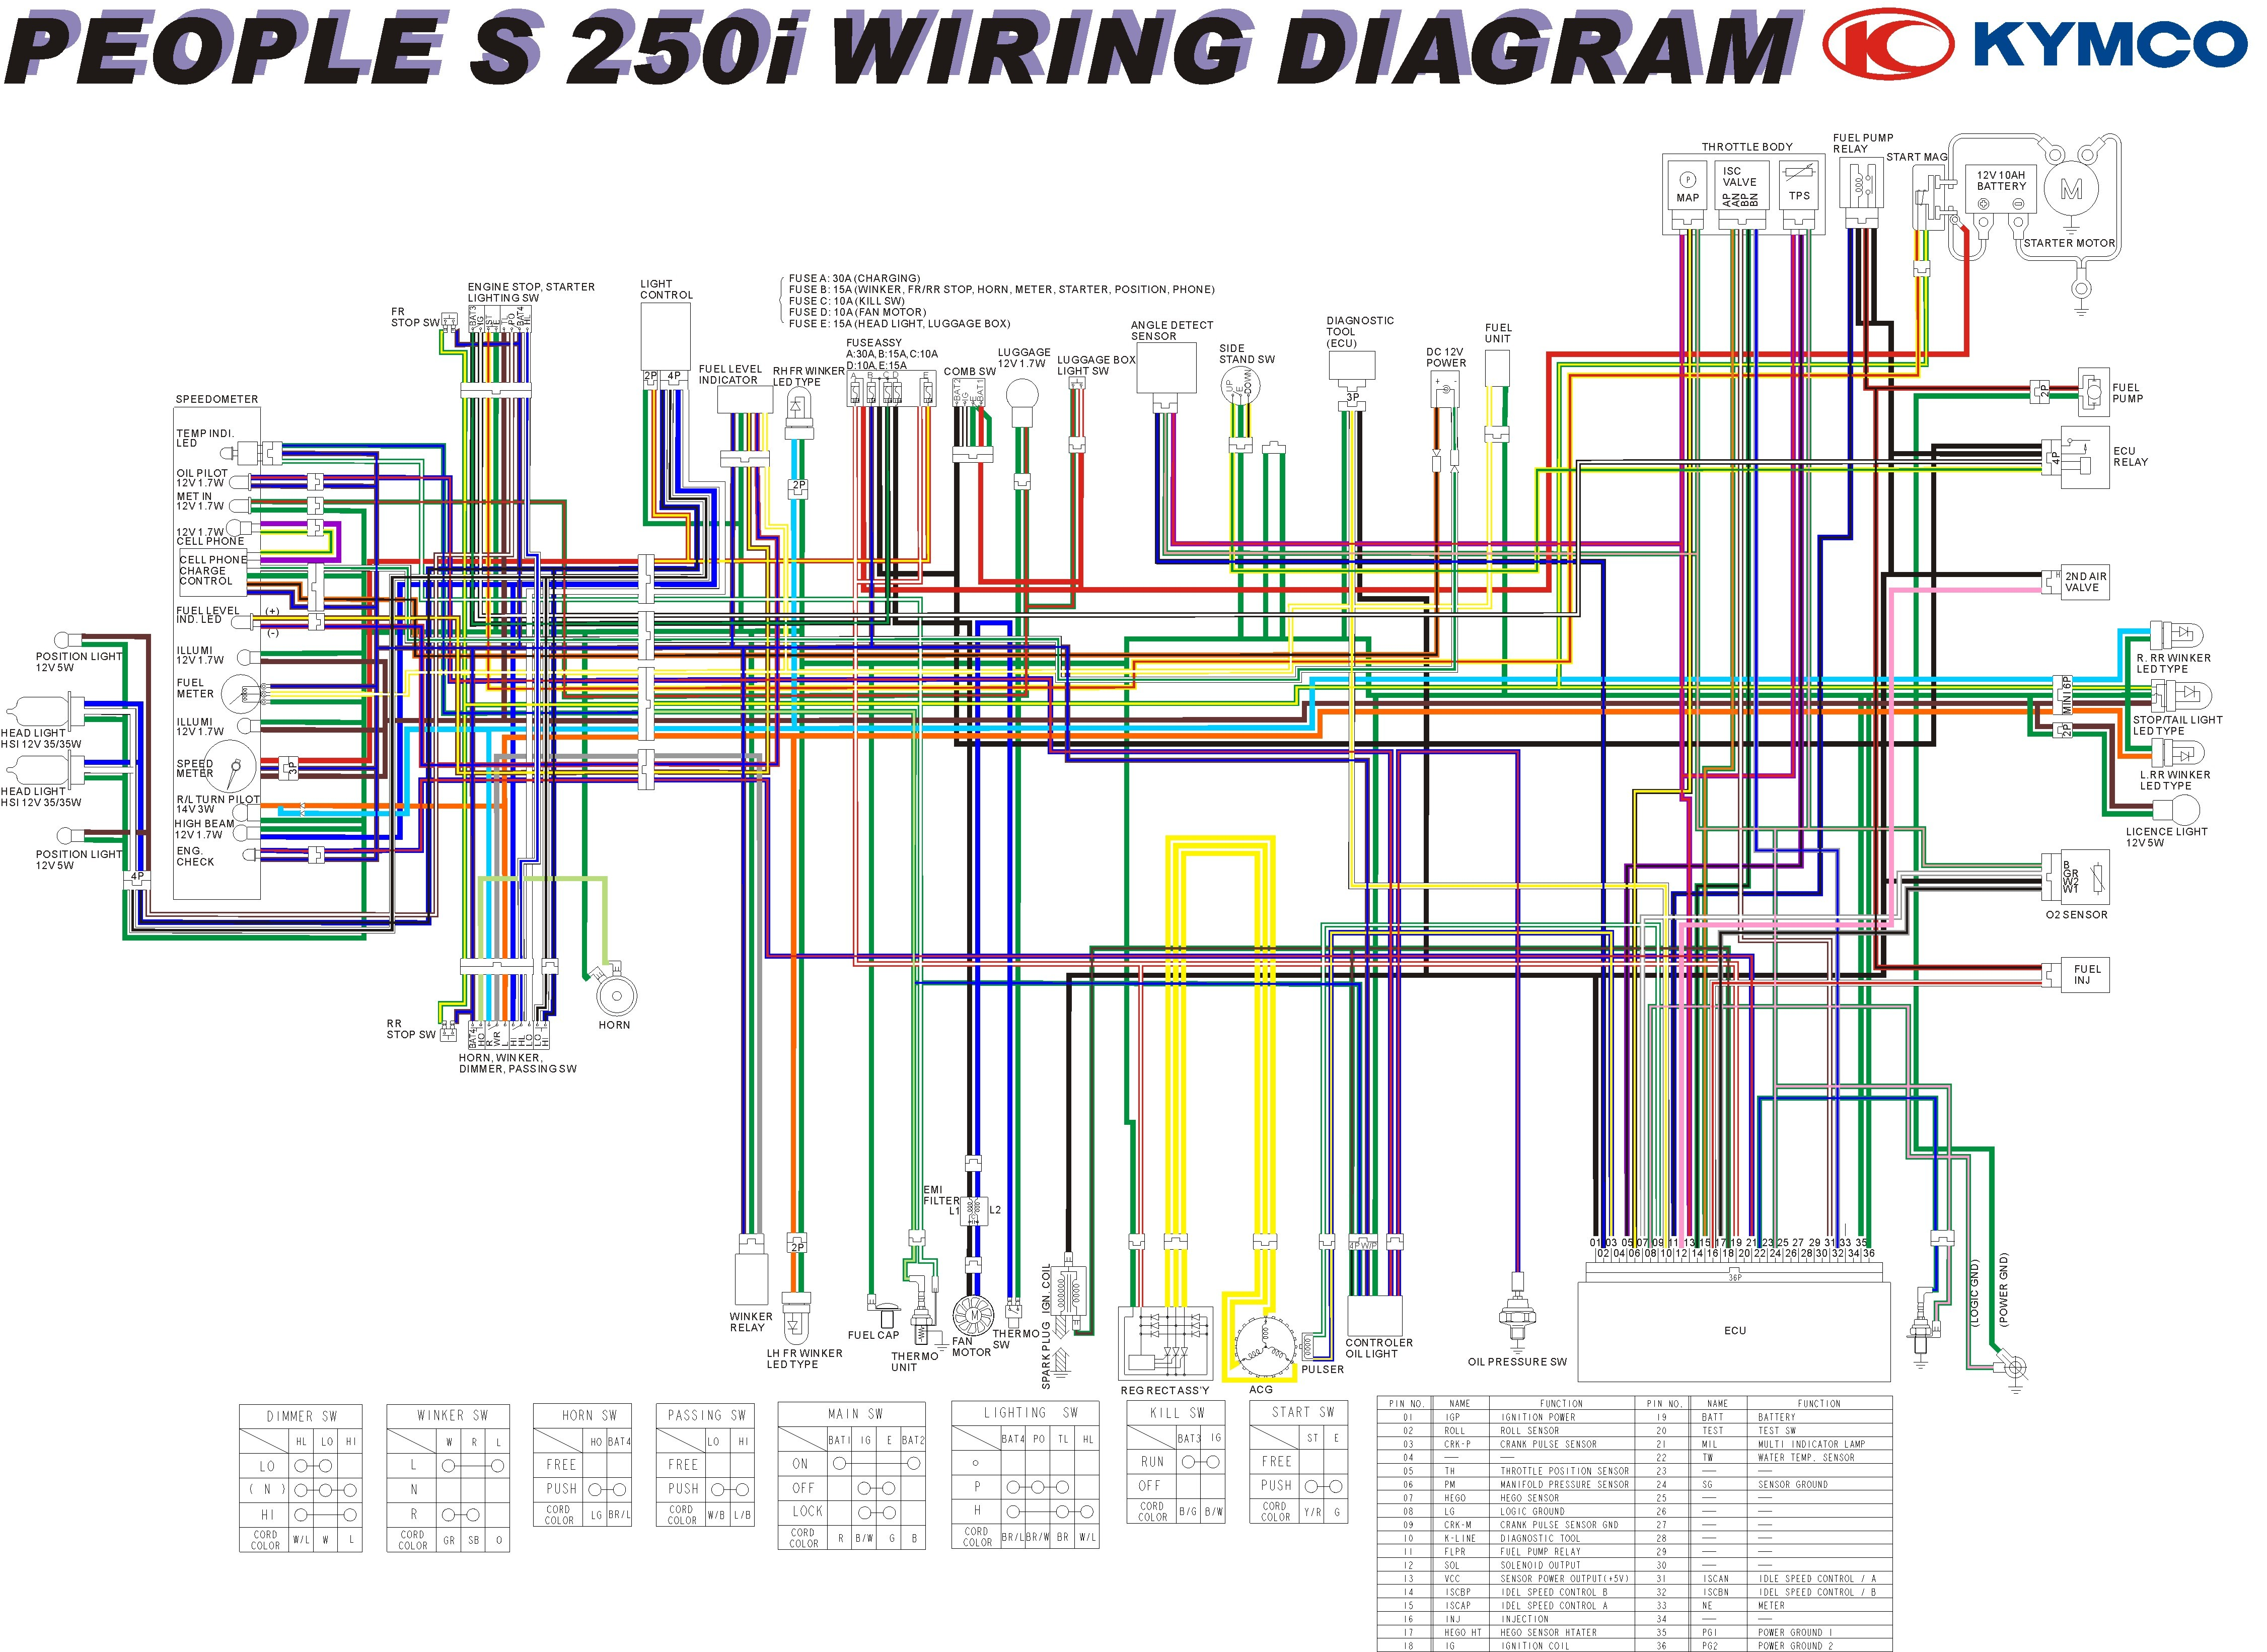 2008 Kymco Wiring Diagram - Daisy Chain On One Switch Wiring Diagram Lights  - fuses-boxs.yenpancane.jeanjaures37.frWiring Diagram Resource